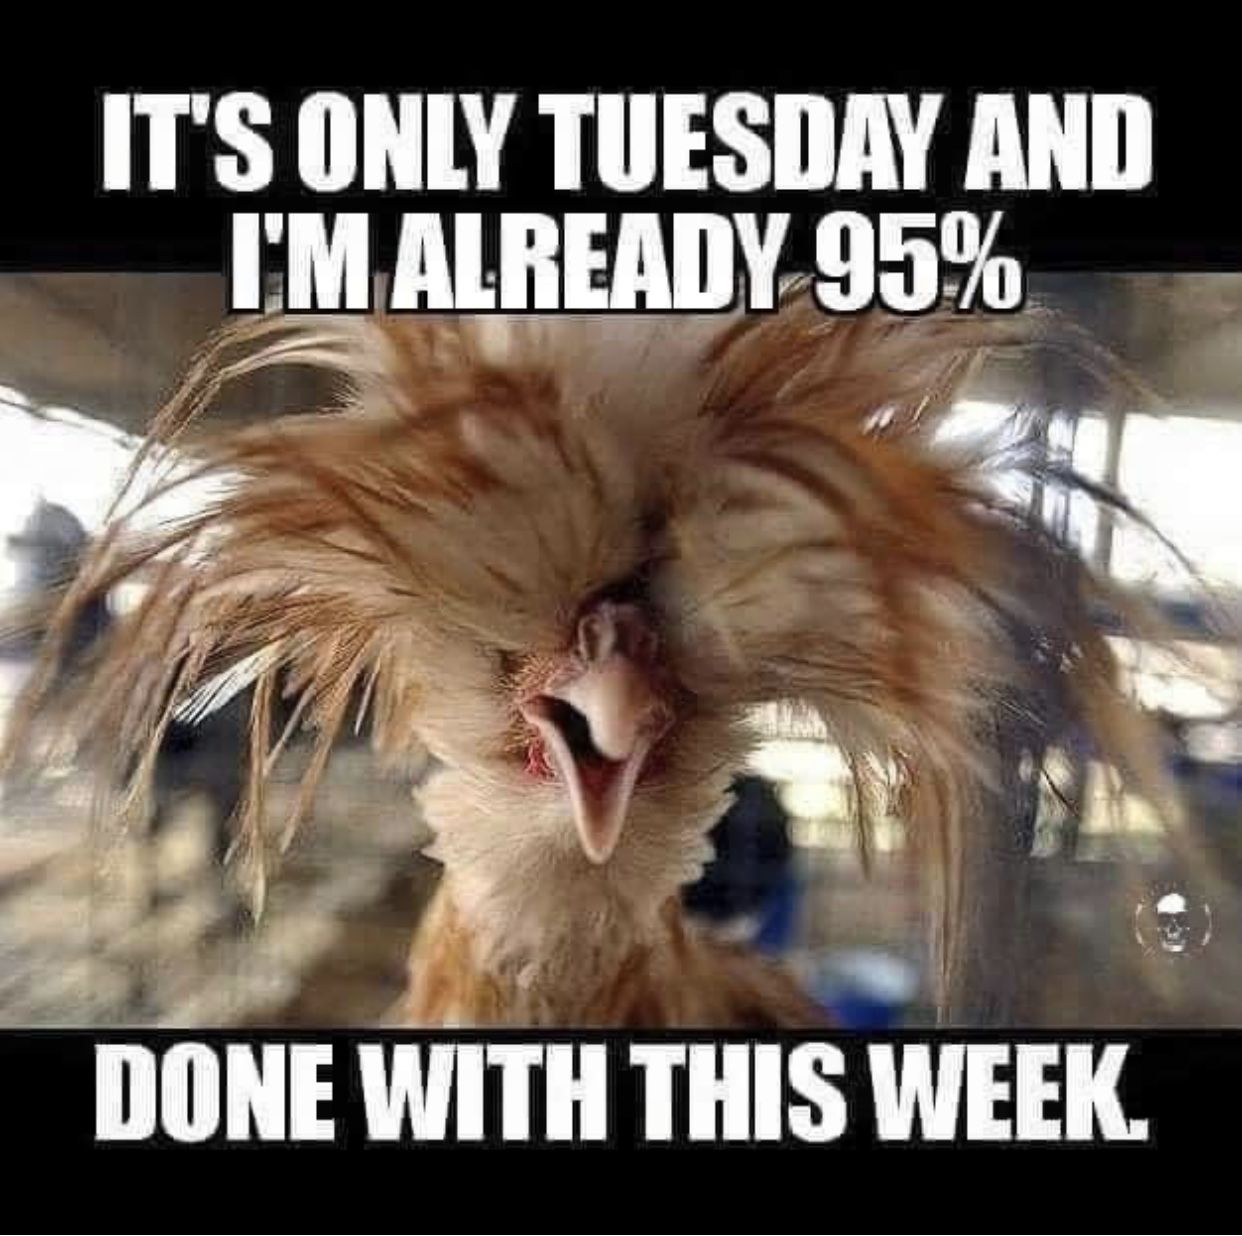 Pin By S Curry On School 2020 Happy Tuesday Quotes Tuesday Humor Its Only Tuesday